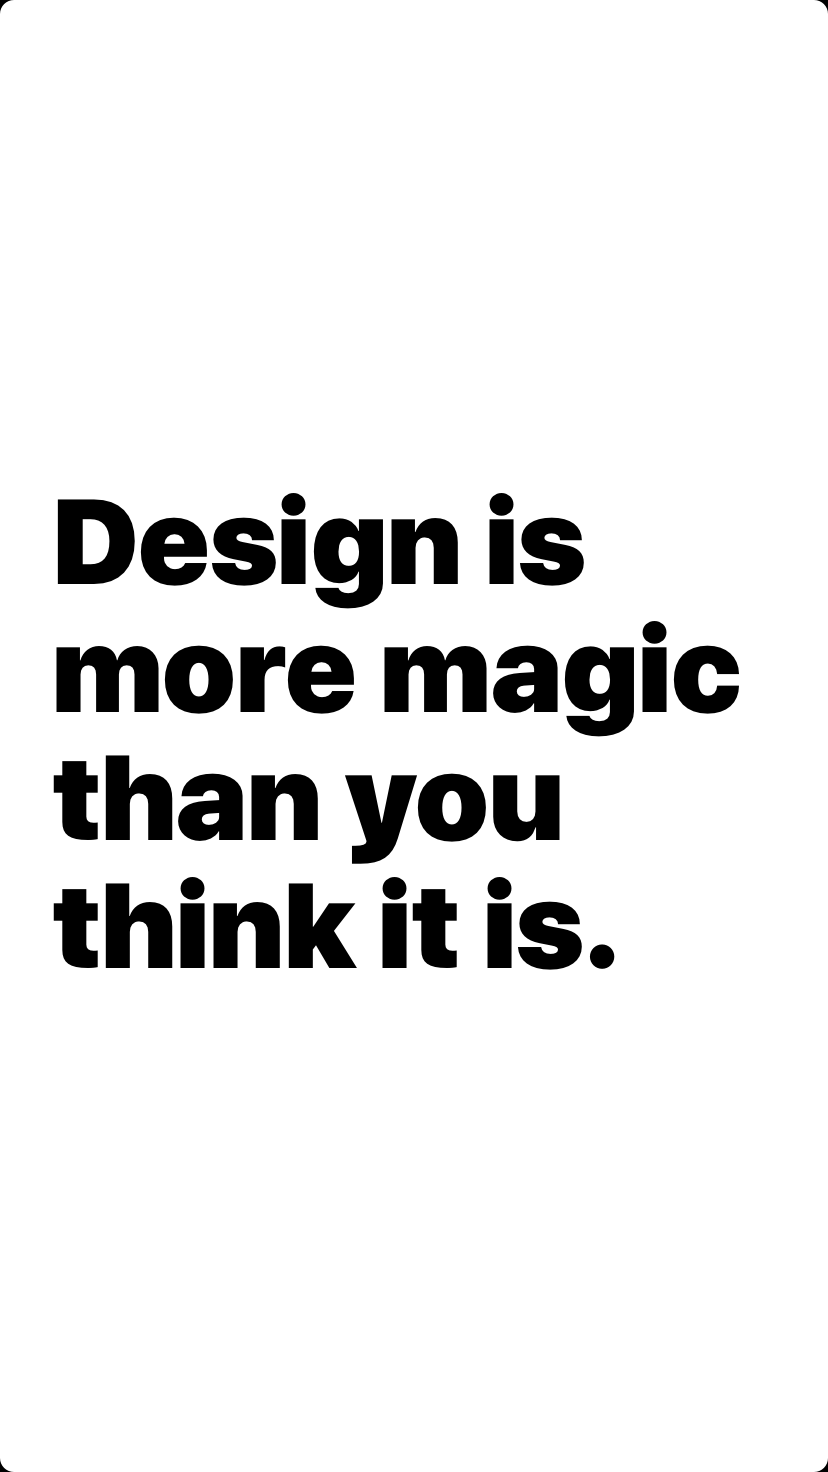 Design is more magic than you think it is.